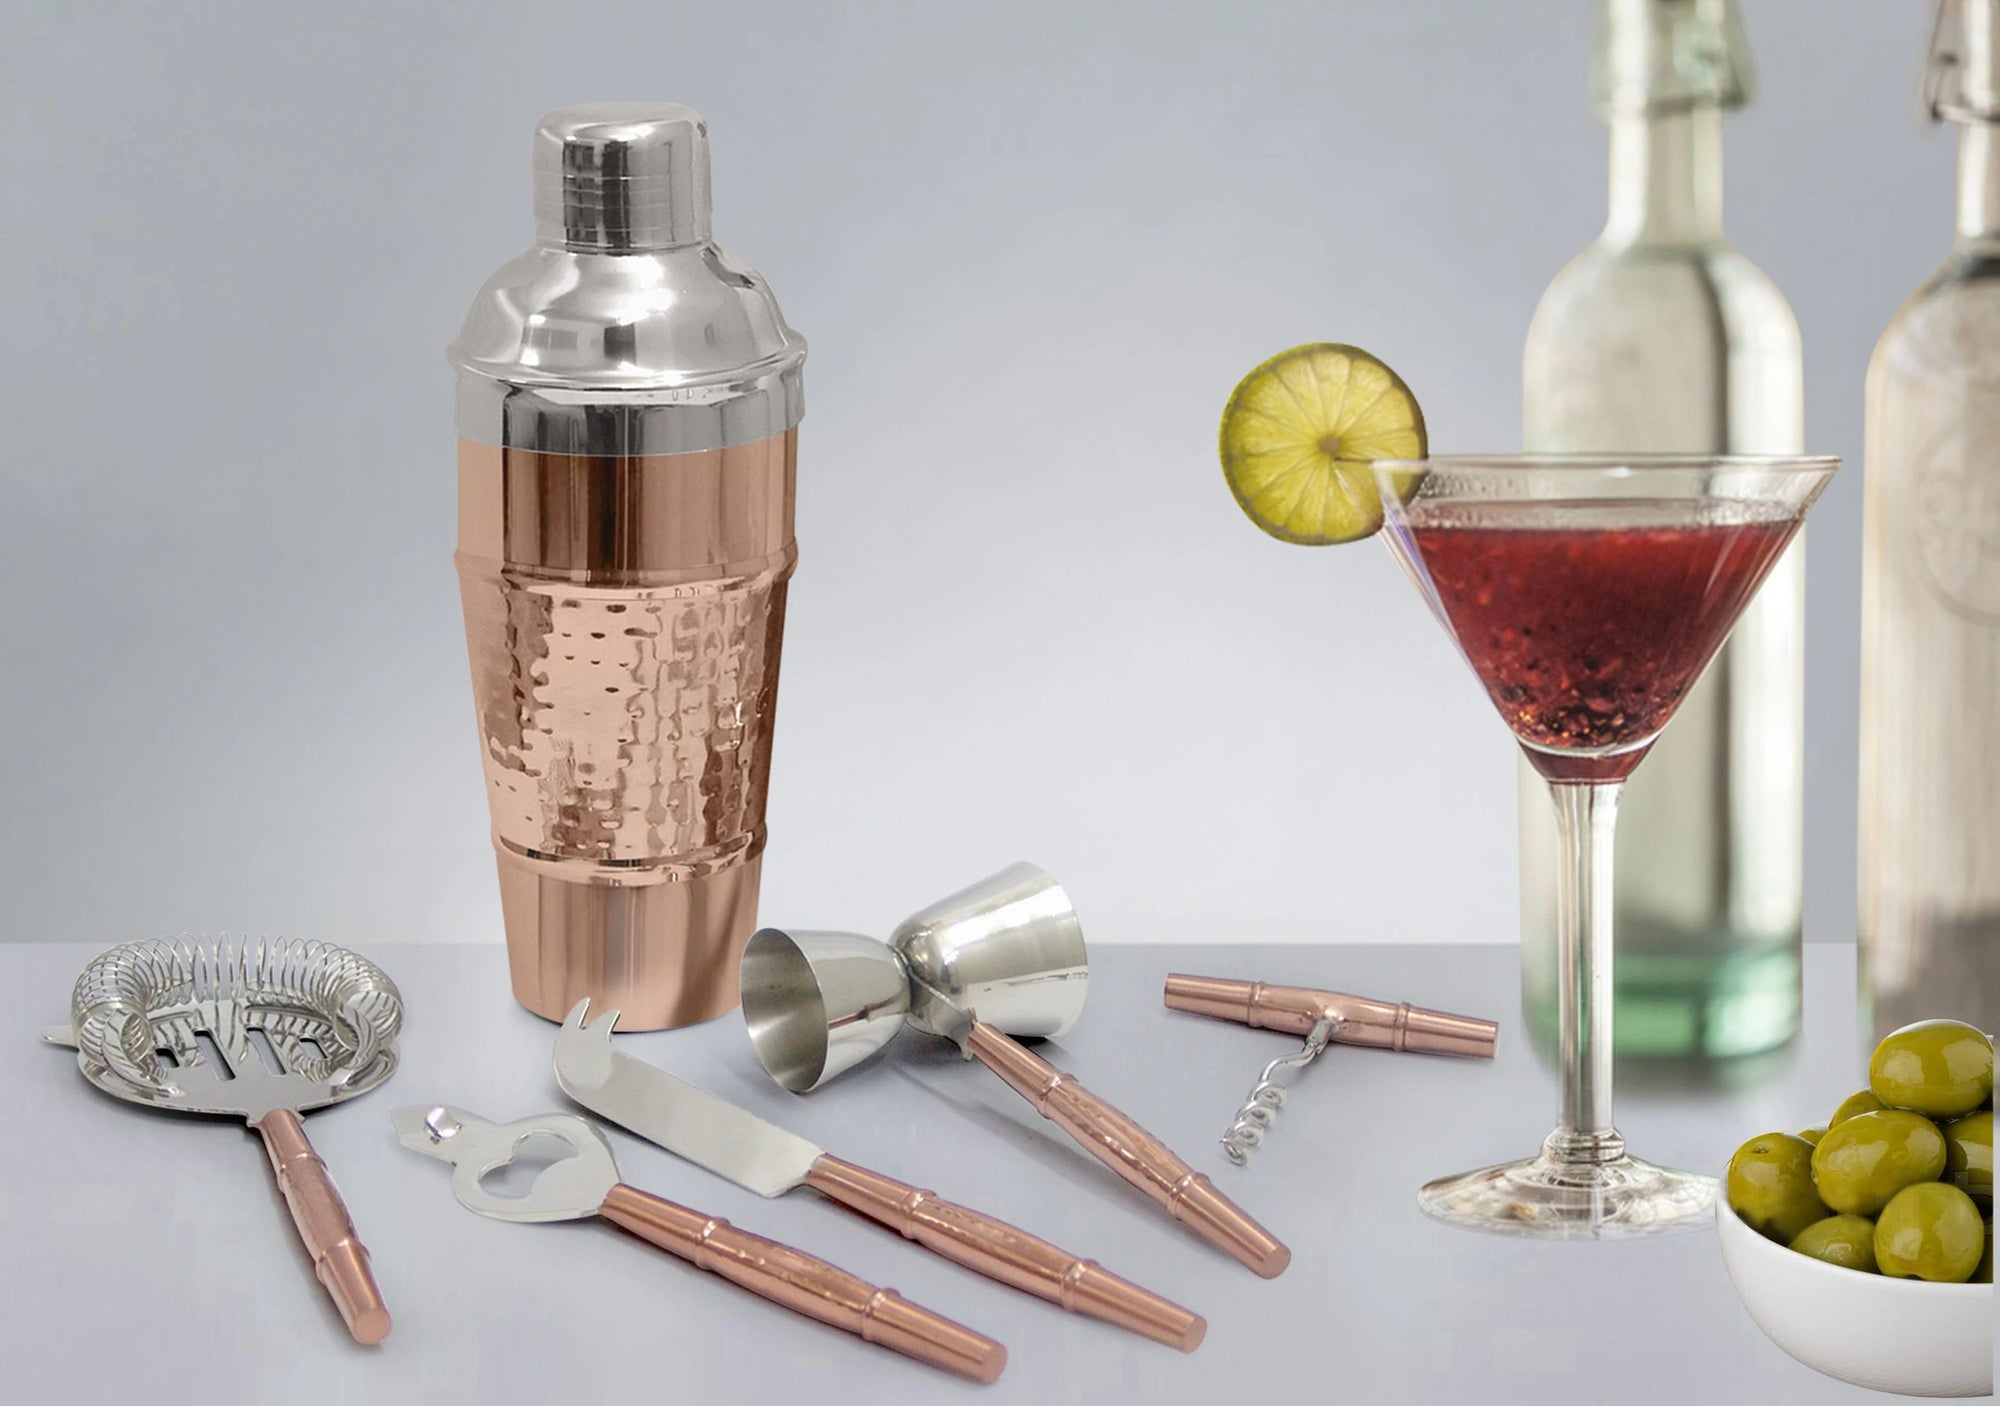 TG-CS-162CH Hammered Cocktail shaker copper finish